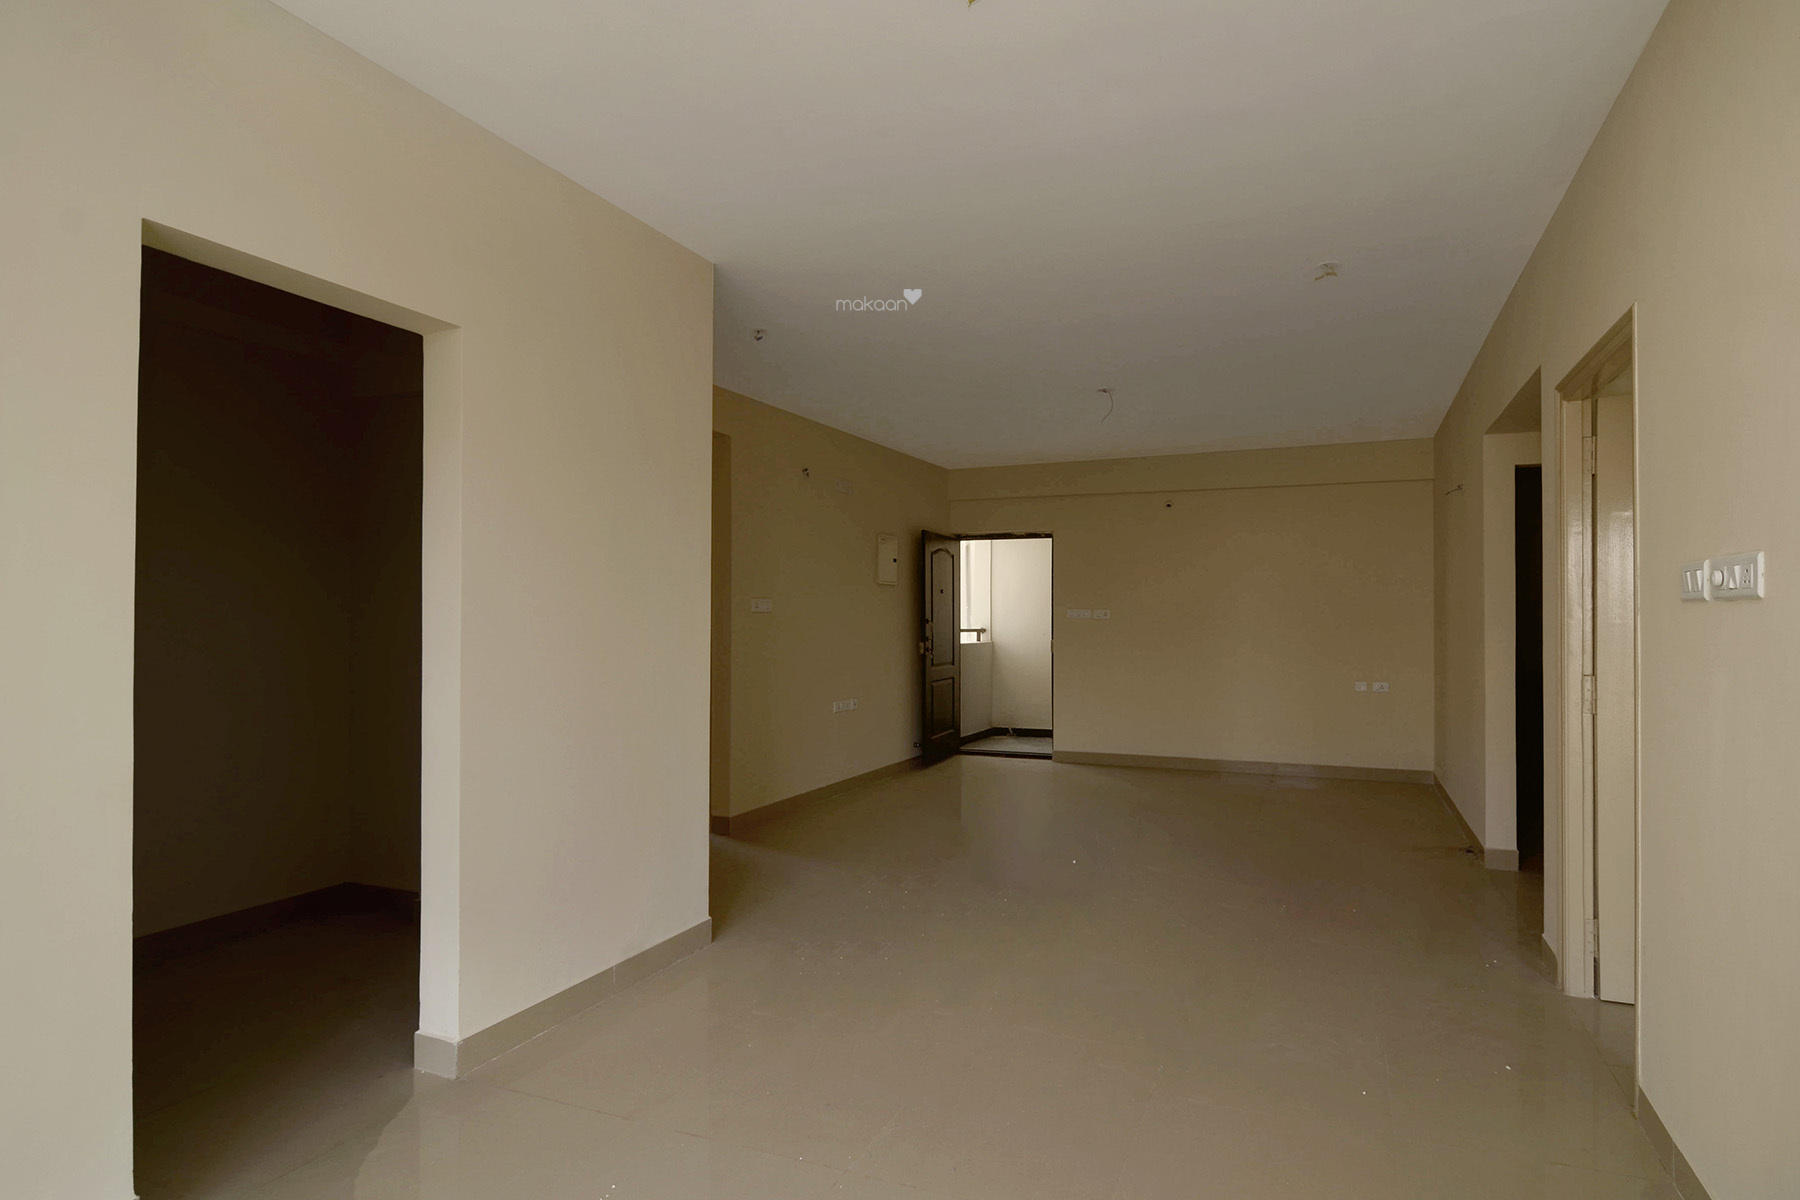 1802 sq ft 3BHK 3BHK+3T (1,802 sq ft) Property By Proptiger In Surya Shakti Towers, ITPL